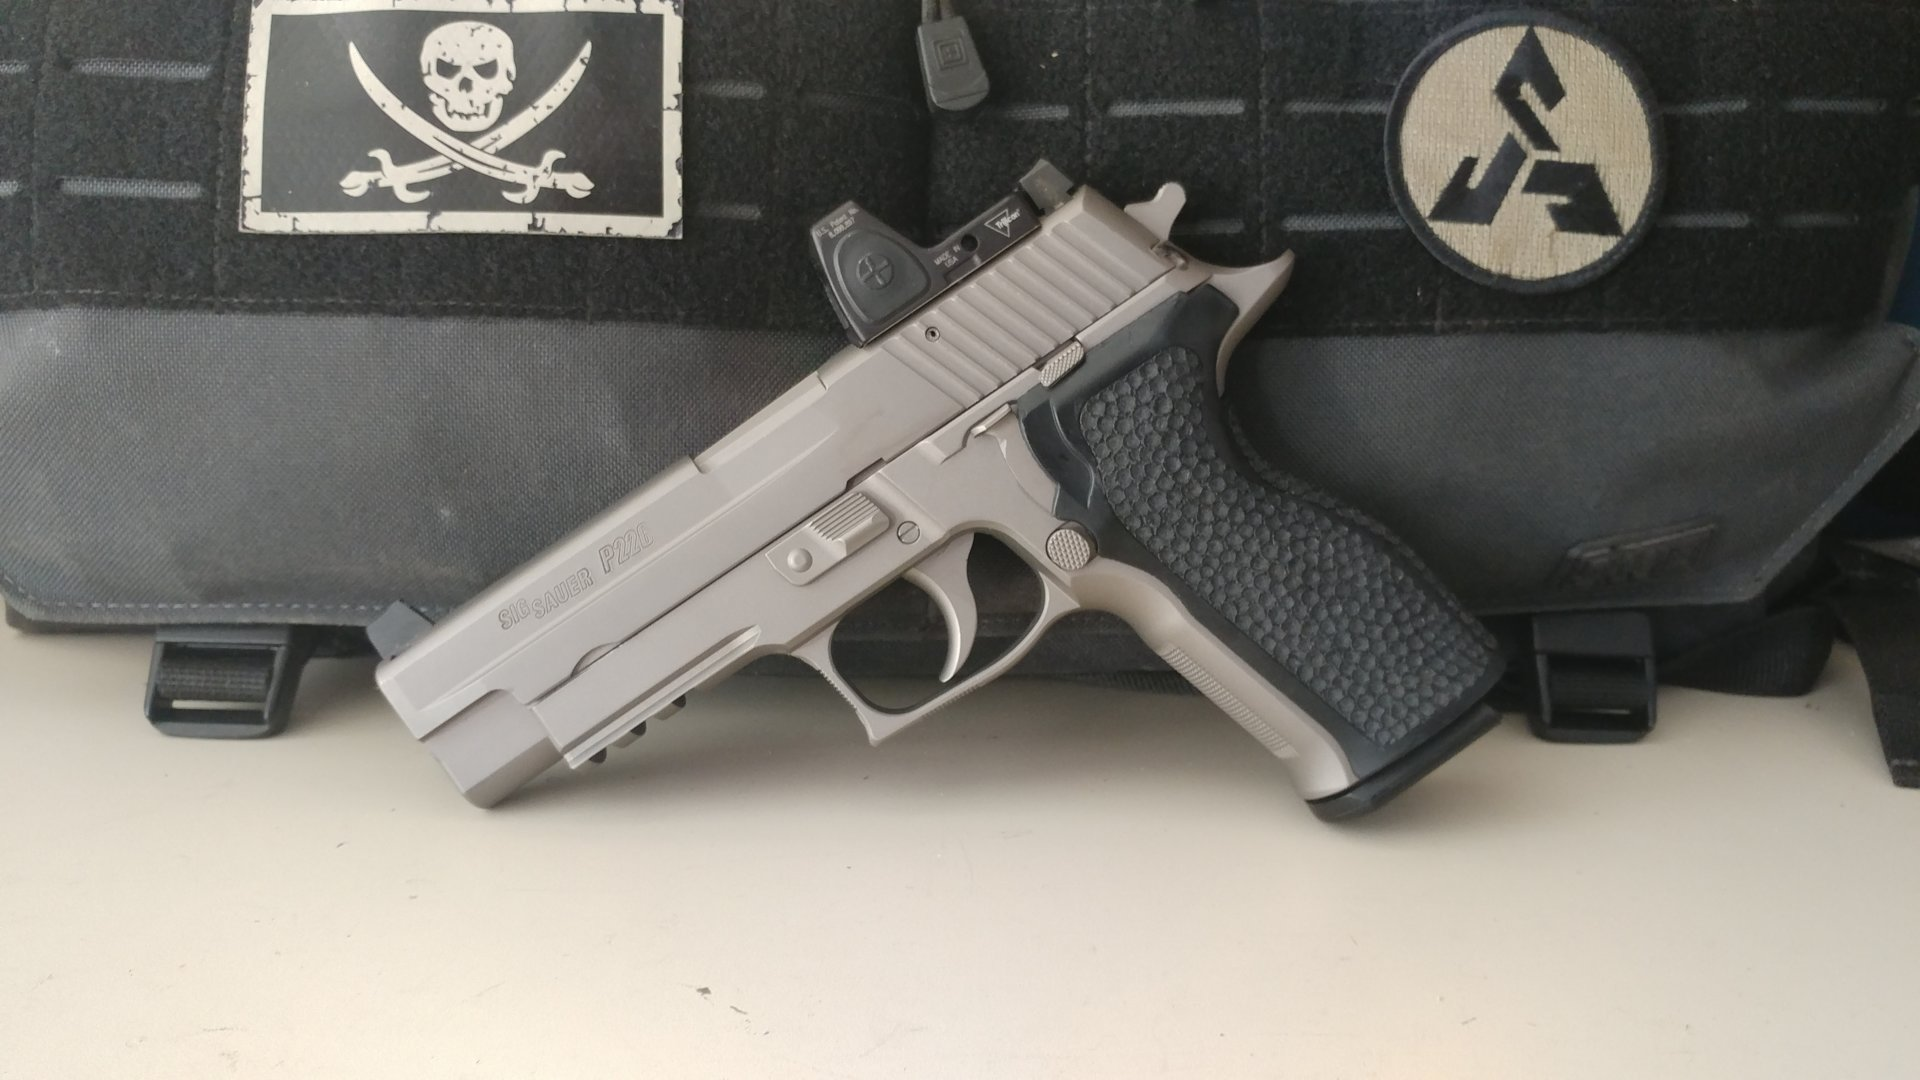 The SIG P226 Gunfighter Pistol - header image